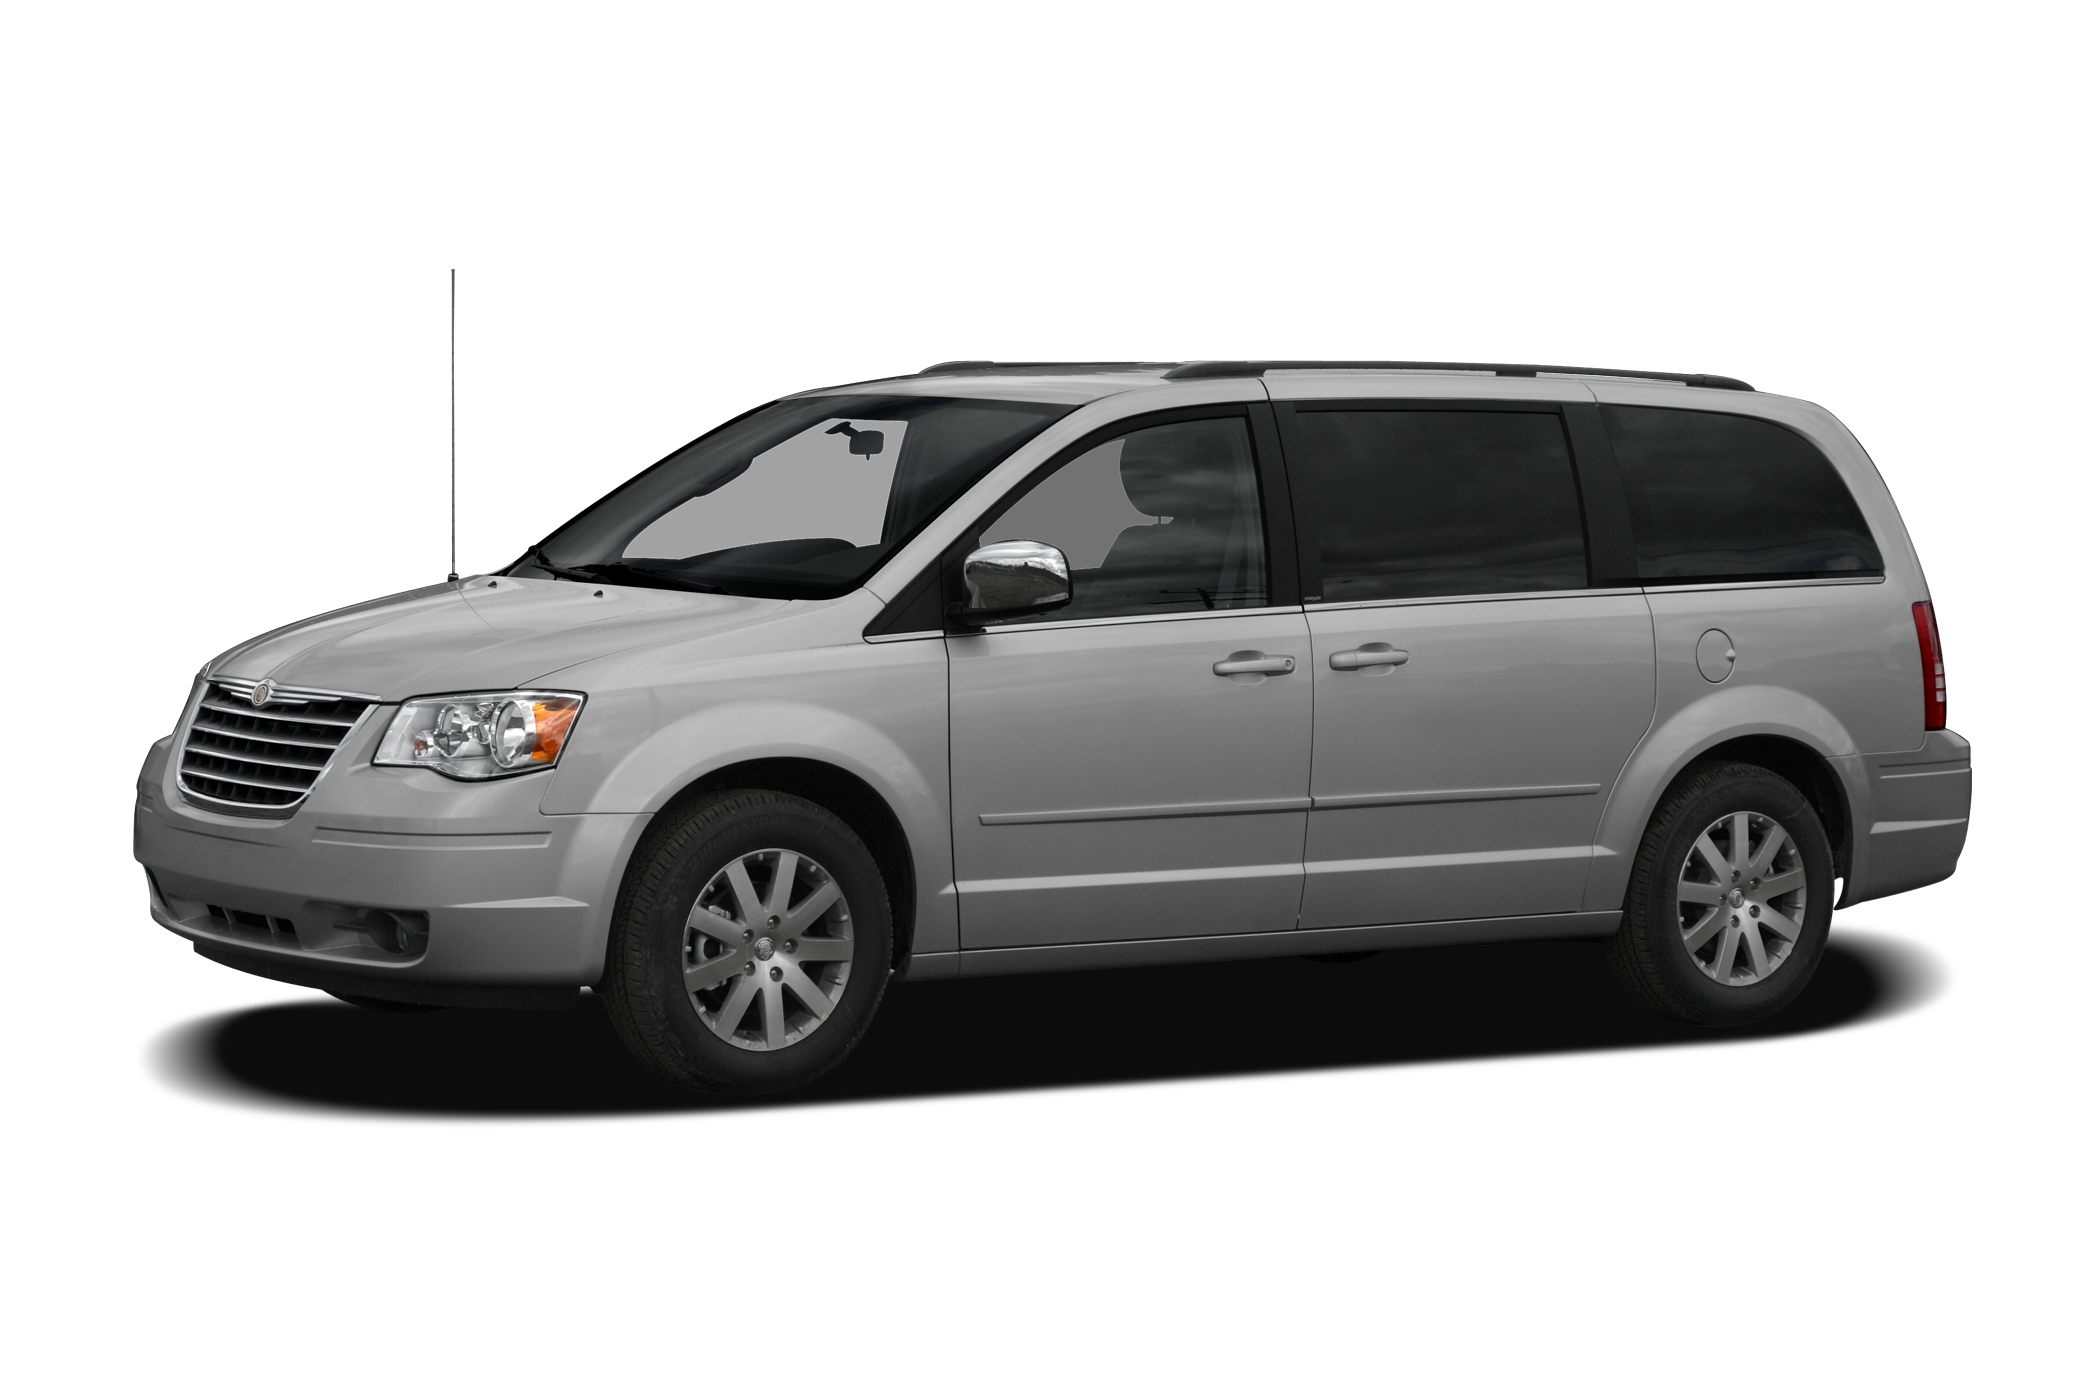 2010 Chrysler Town  Country LX LX trim CARFAX 1-Owner GREAT MILES 43486 FUEL EFFICIENT 24 MPG